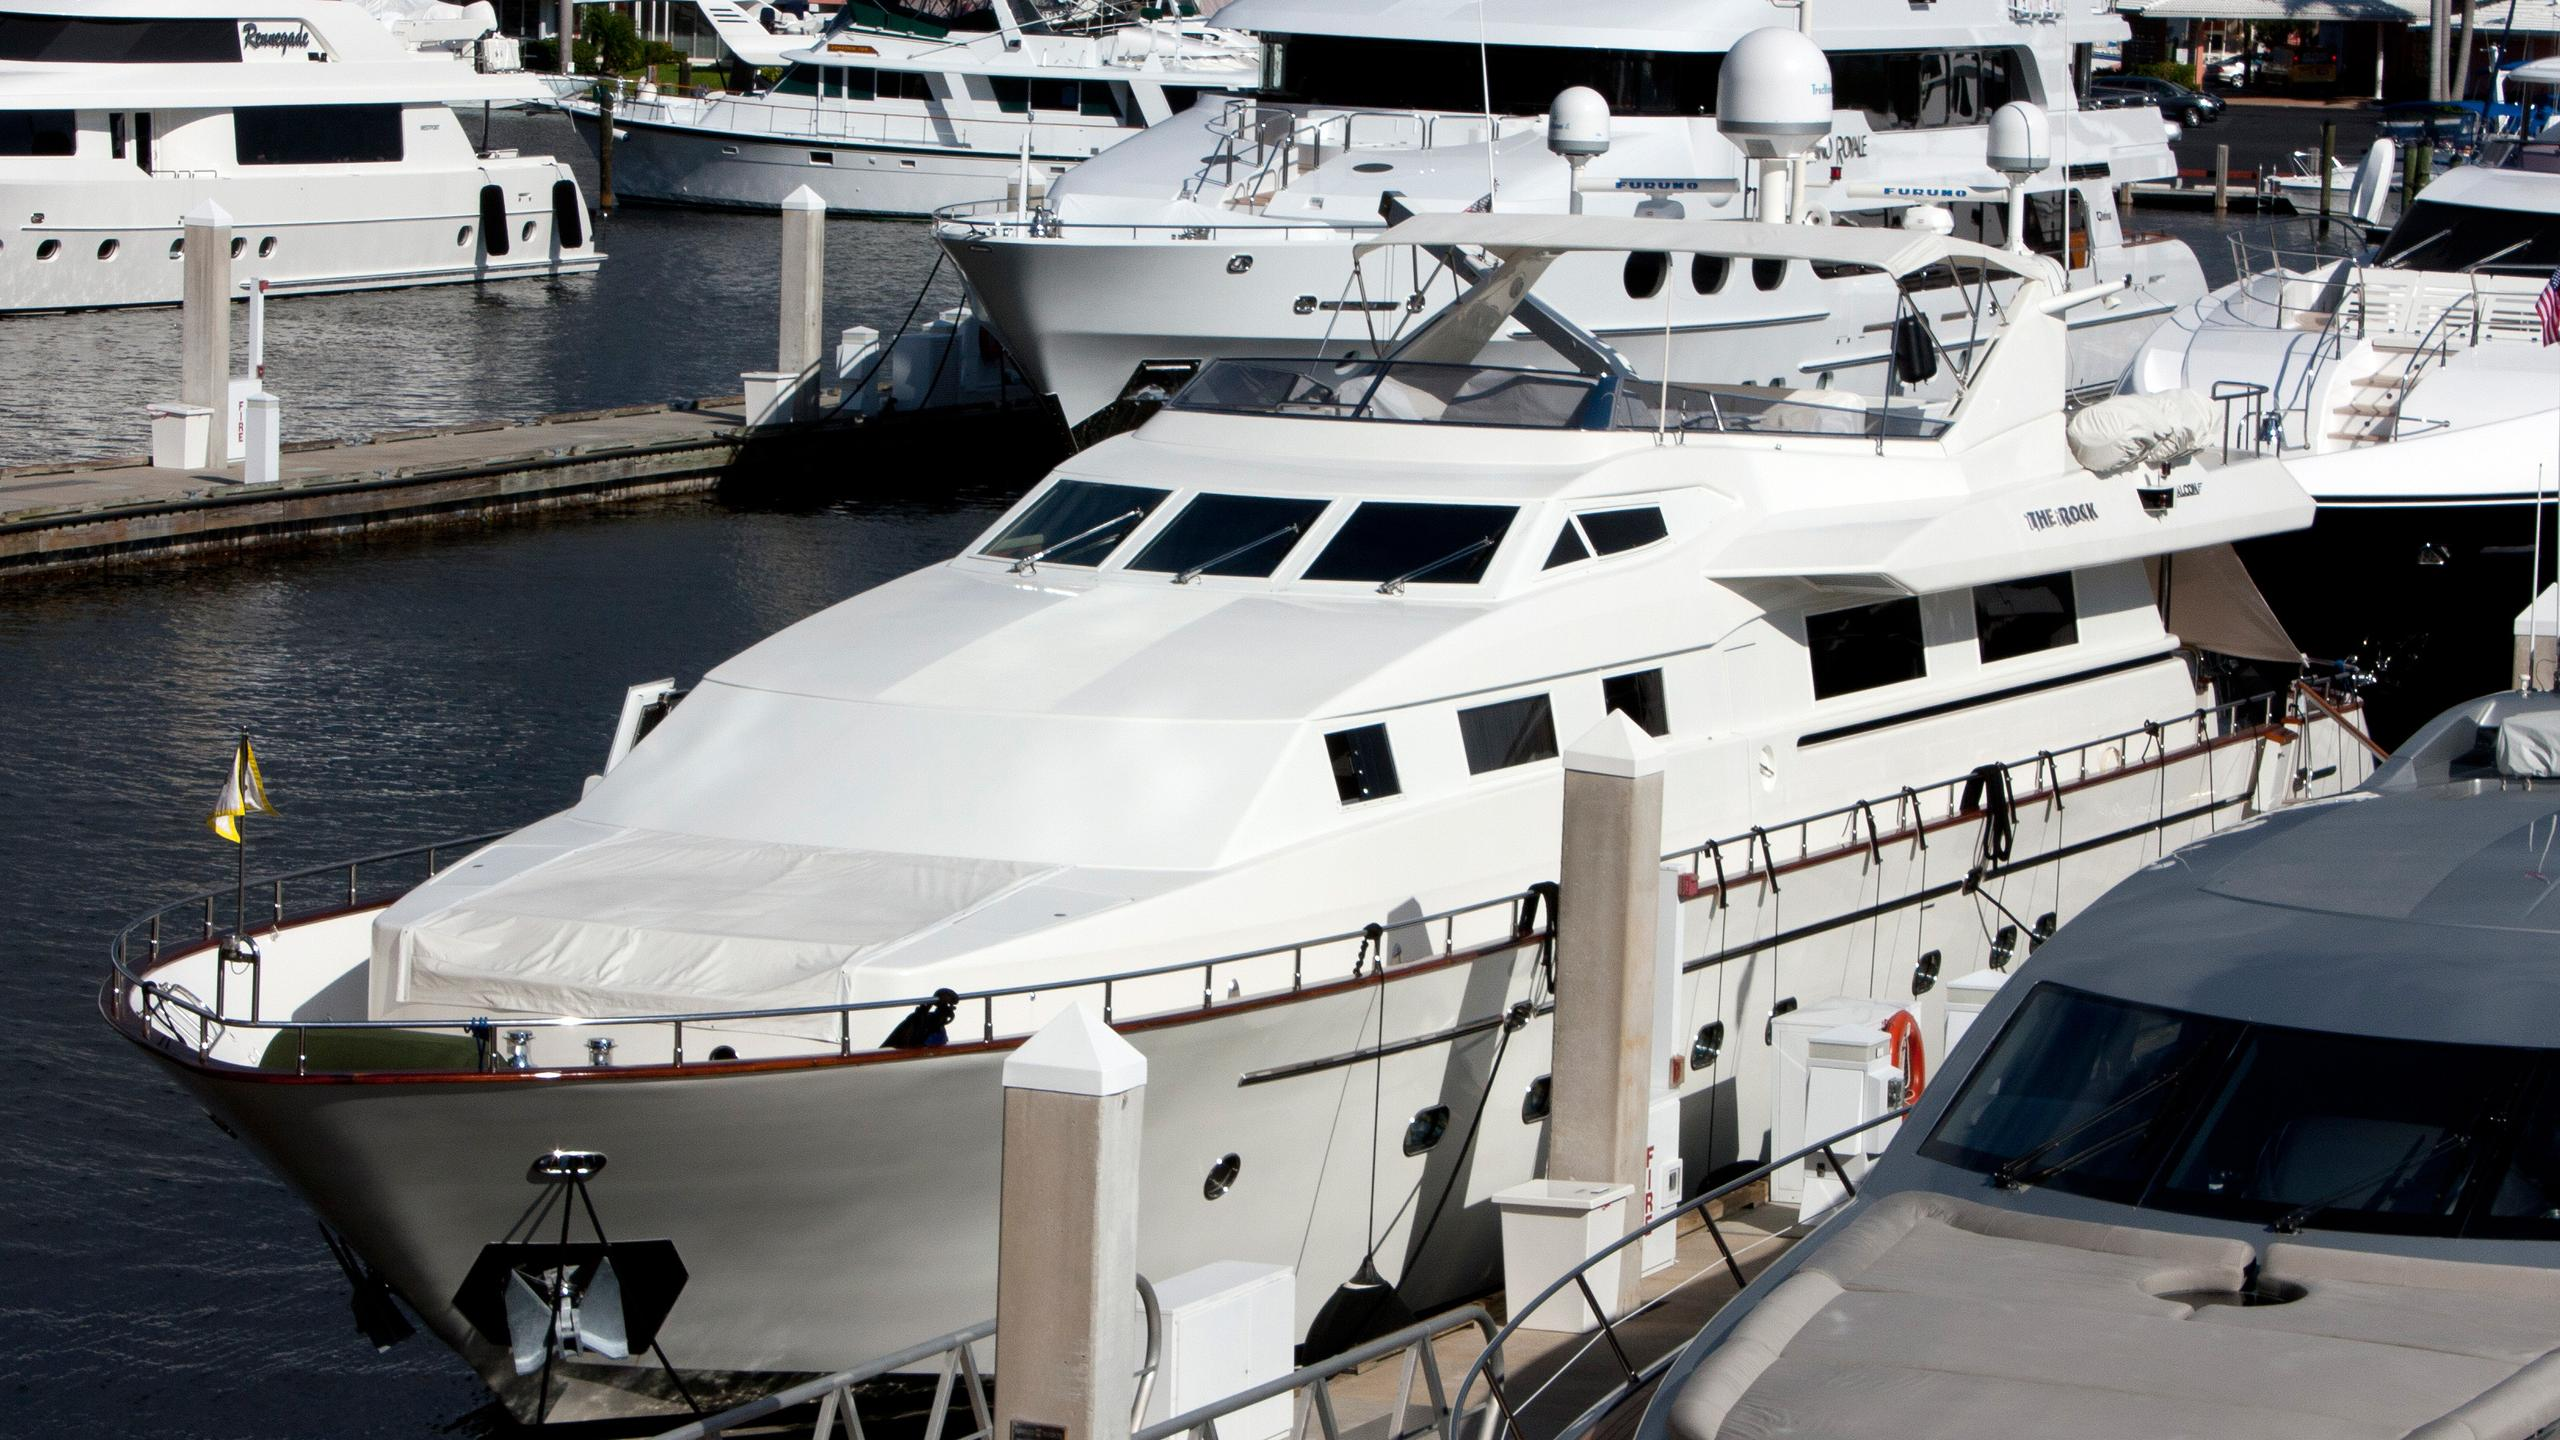 the-rock-motor-yacht-falcon-100-2000-31m-moored-bow